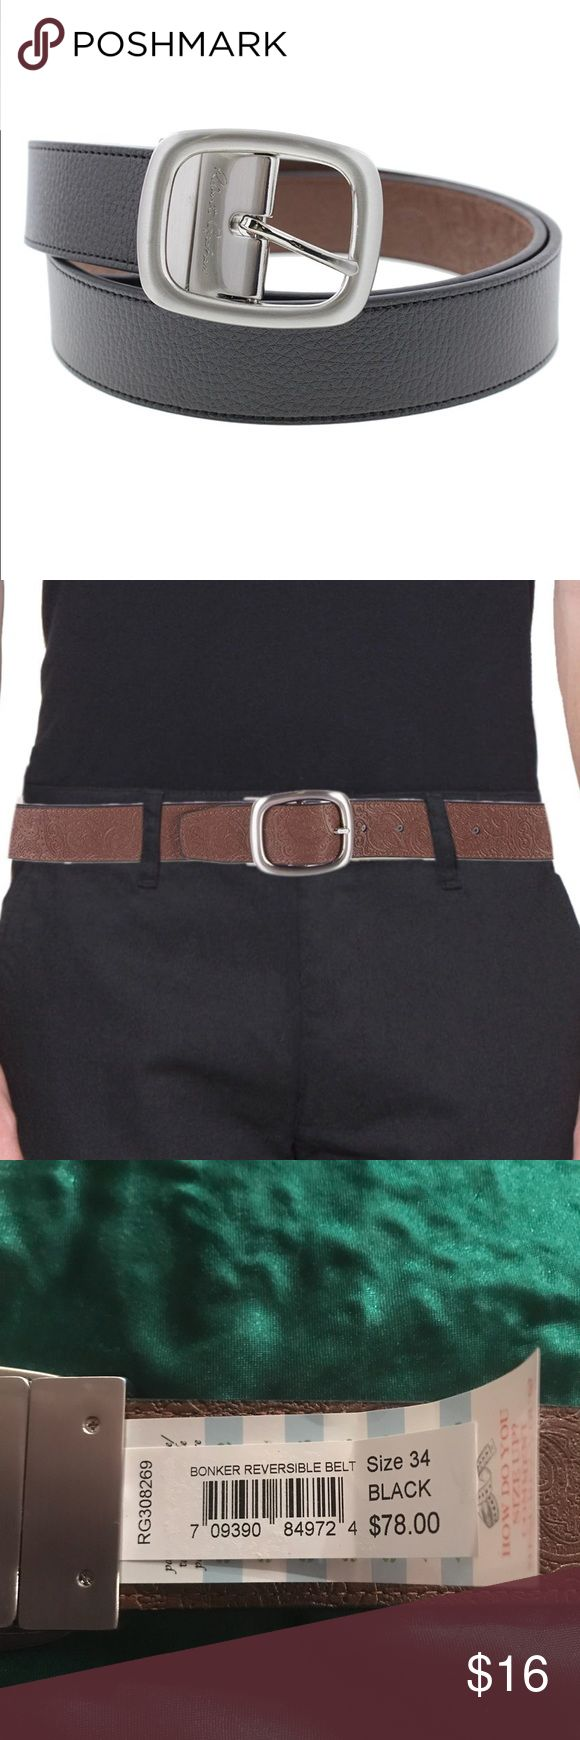 🆕 Robert Graham 💥 Bonker Reversible Belt 💥 Enjoy the versatility of the Robert Graham belt with its reversible textured black and embossed brown. This item is make from simulated Leather and has a nice heavy buckle with Robert Graham's Signature. 💖Thank you for visiting my closet 💥   🛍 Bundle and save 20%!! 🚭This item comes from a smoke- free home 🦔 This item comes from a pet- free home 🤔  Please feel free to contact me with questions 🤗 ❤️💙💜 Happy Poshing 💜💙❤️ Robert Graham…